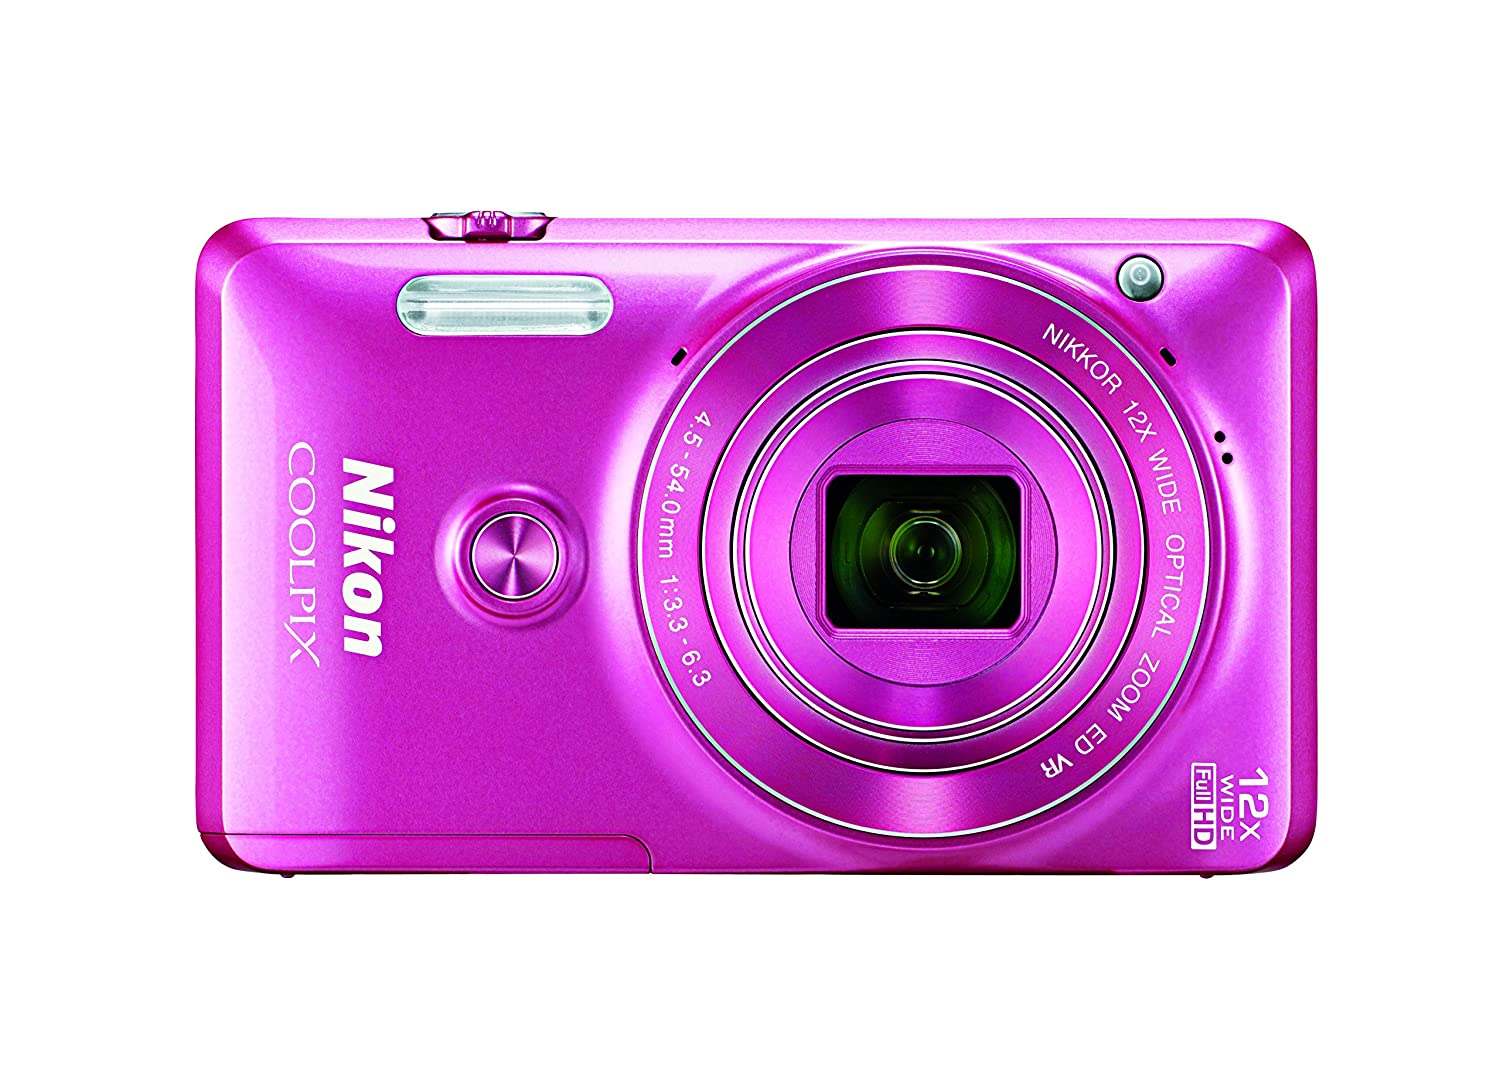 Nikon COOLPIX S6900 Digital Camera with 12x Optical Zoom and Built-In Wi-Fi (Pink)